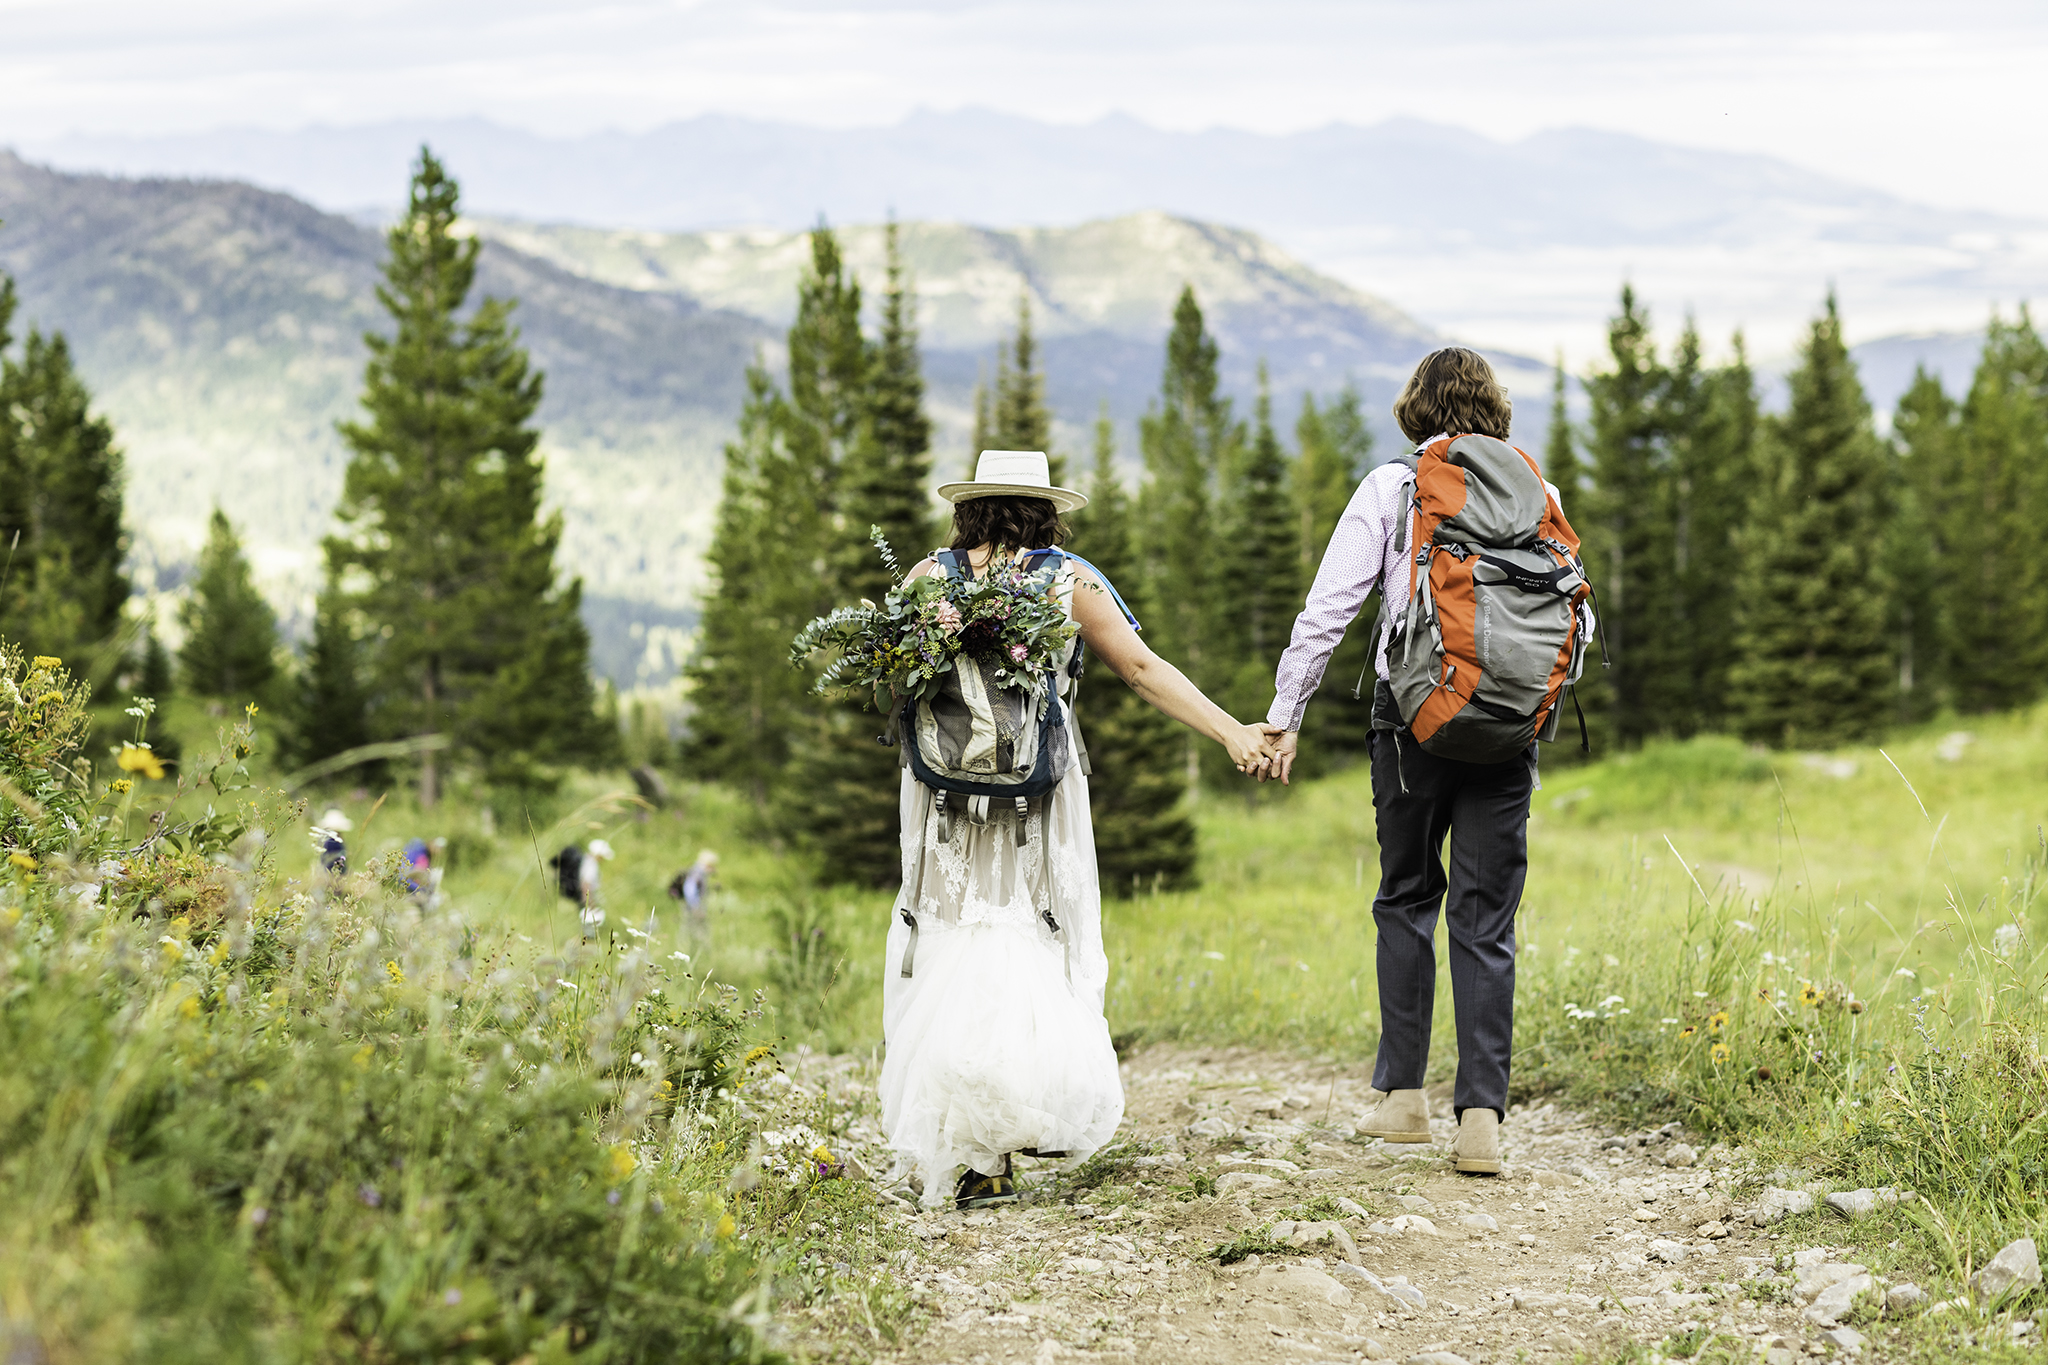 Eloping: Not the Escape Weddings of the Past